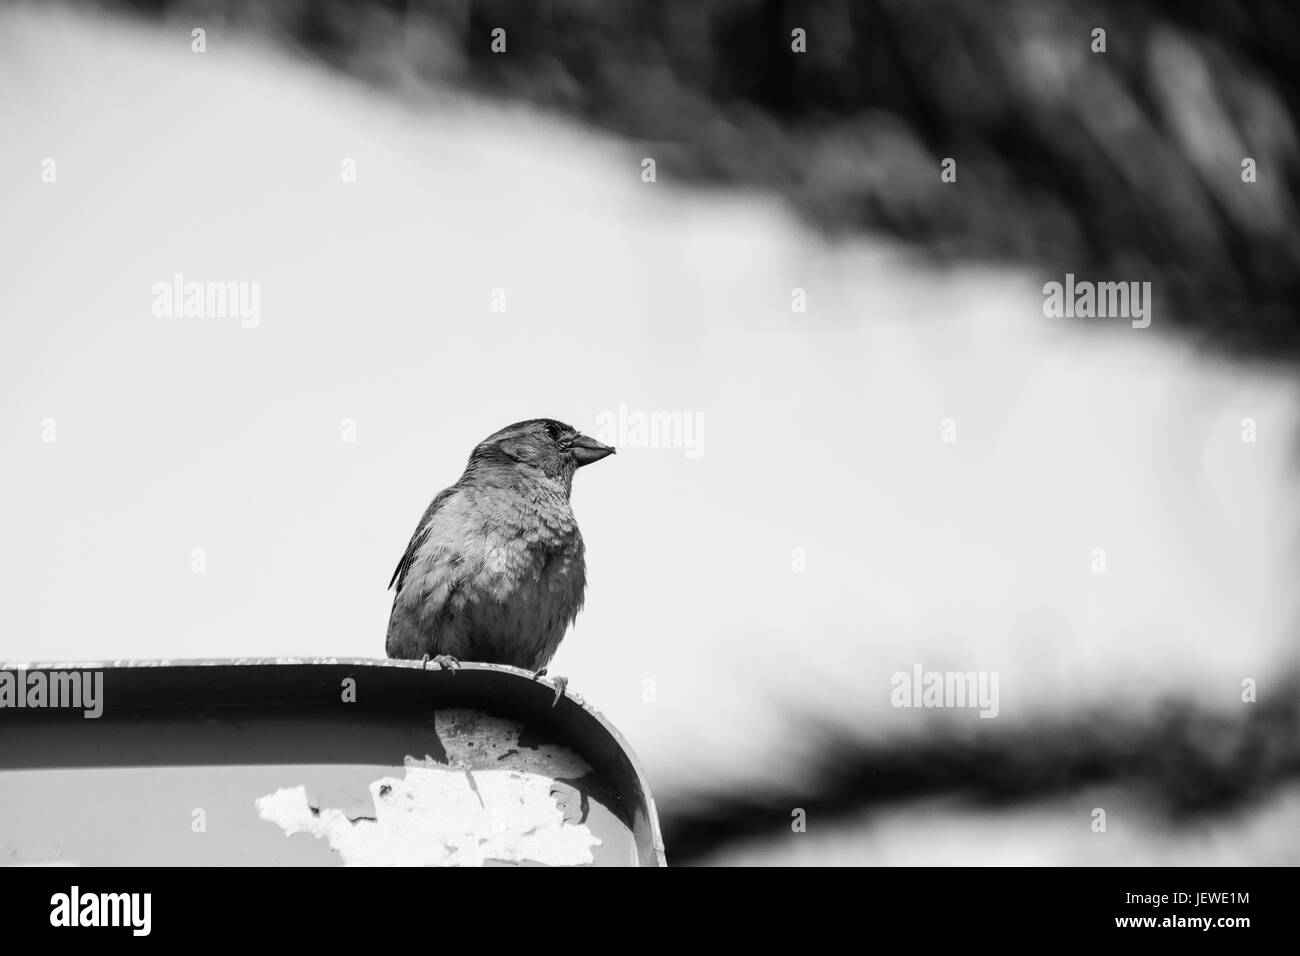 Black and white image of sparrow perched on a road sign - Stock Image